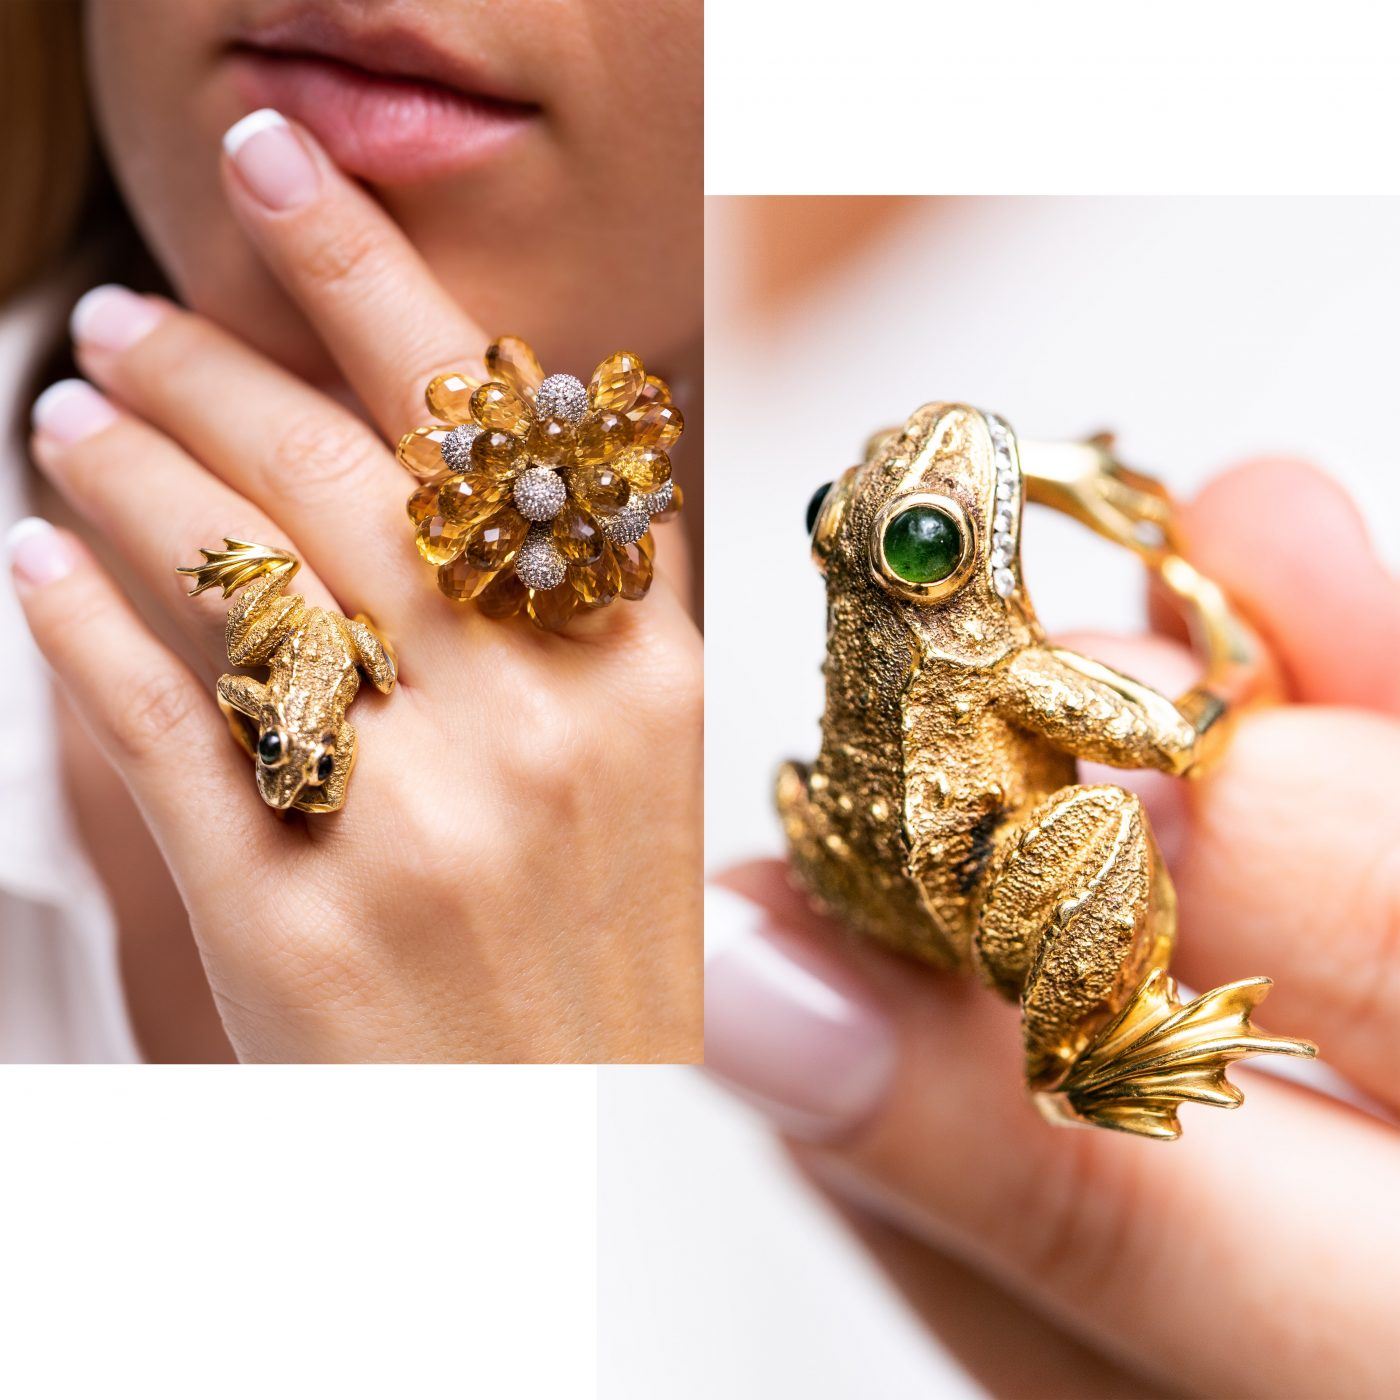 , AN INTIMATE DIALOGUE WITH A LISBON VINTAGE JEWELRY DEALER, ISABEL LOPES DA SILVA: THE SIMPLE TRUTH BEHIND COLLECTING VINTAGE JEWELRY RINGS, Victoria's Jewelry Box